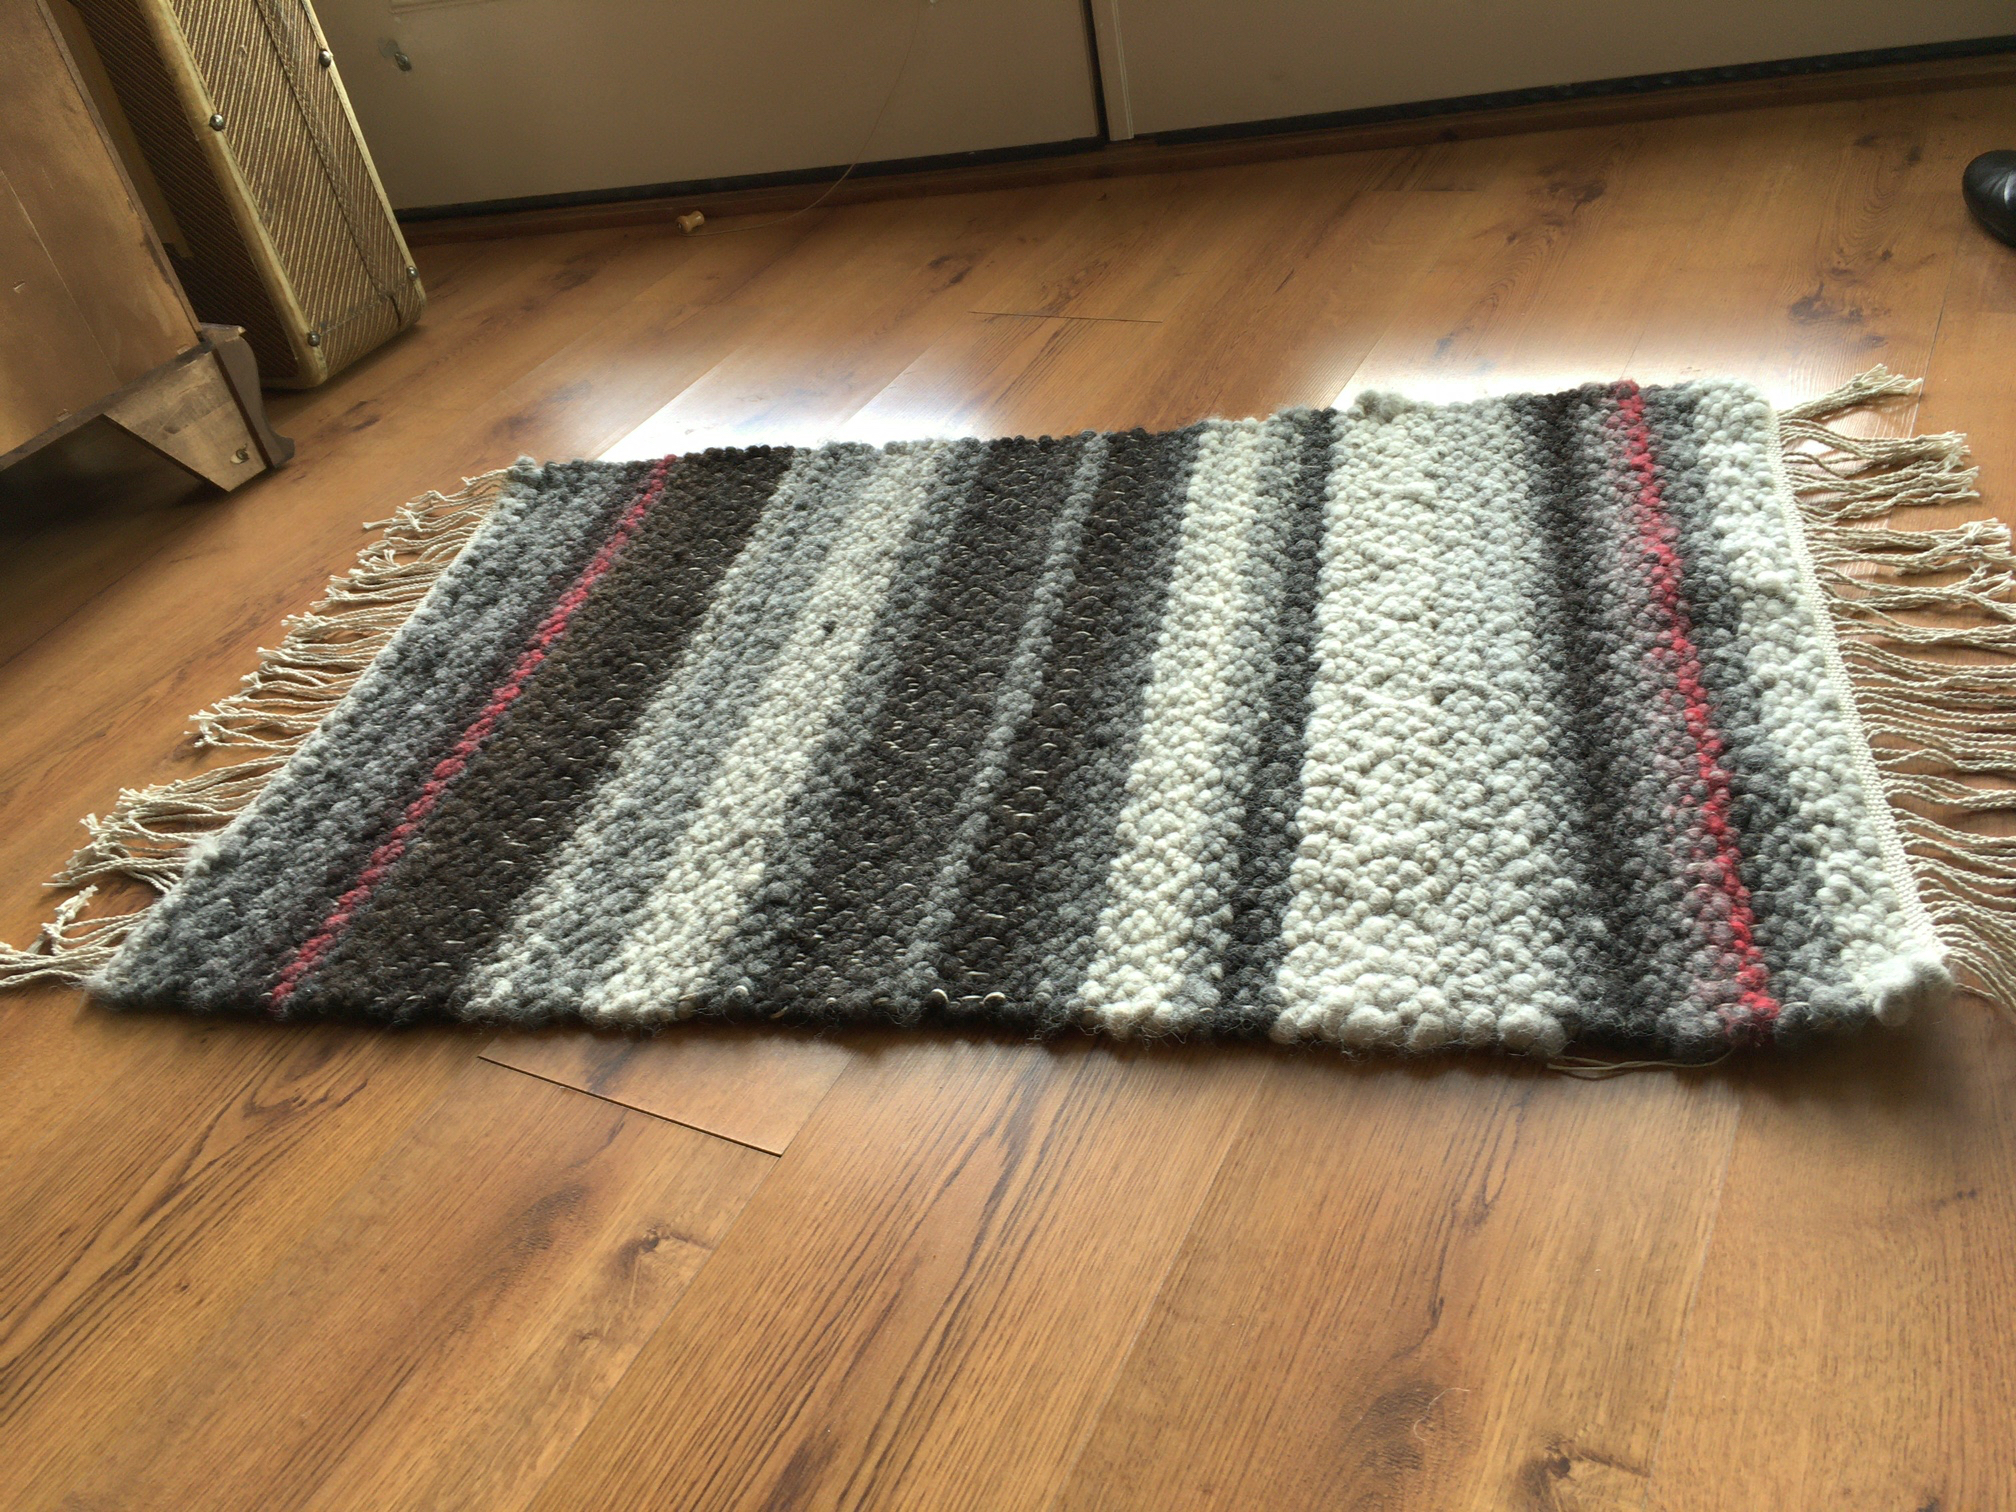 Woven Rug from side.jpg